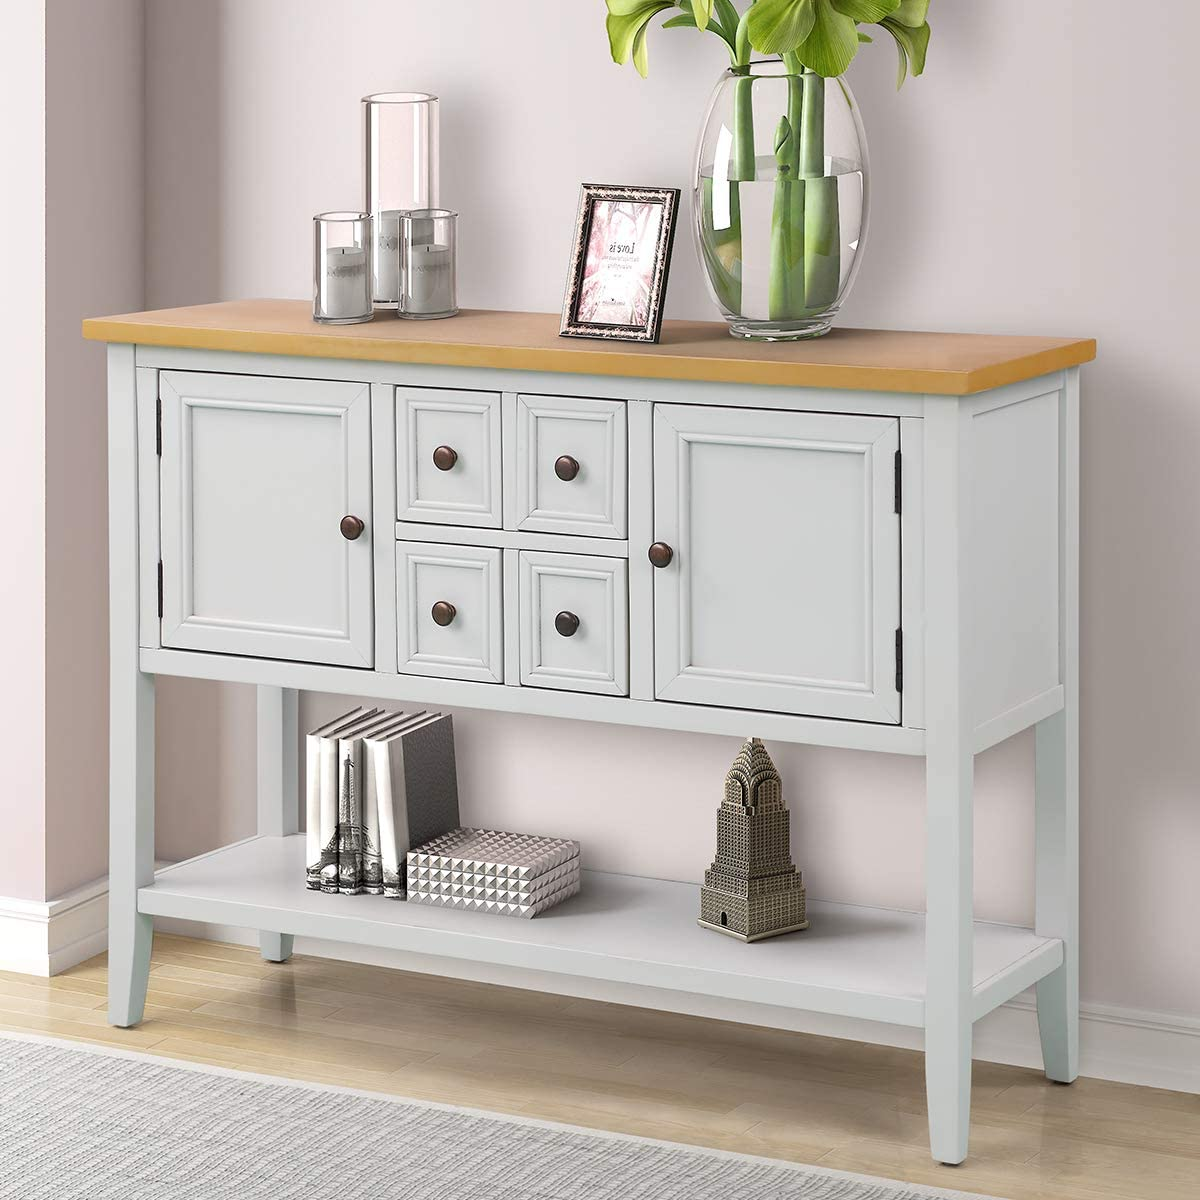 ZSQ Buffet Table, Cambridge Series Sideboard Table with Bottom Shelf, Console Table Dining Room Server, Entry Table Buffet Cabinet Sofa Table Antique White